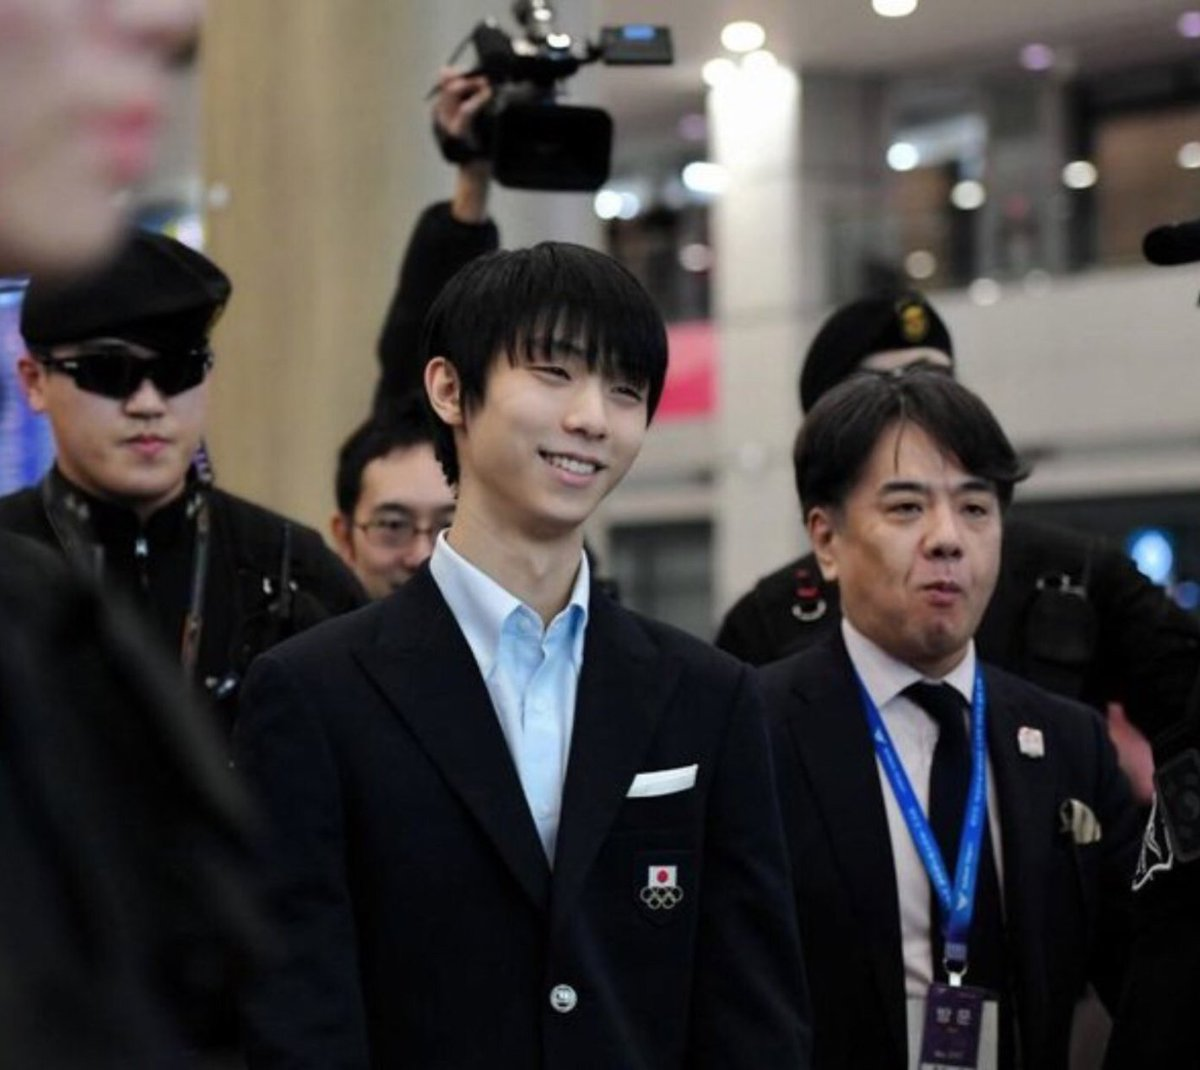 i&#39;m sad, knowing how badly yuzu must have wanted to be at jnats, but i think to brian: &#39;he trusts [his medical team] and if it means waiting longer but to be able to be fine for the end of the season, that could be an option.&#39; there&#39;s no night without a daybreak  <br>http://pic.twitter.com/xSIyGx7ybQ